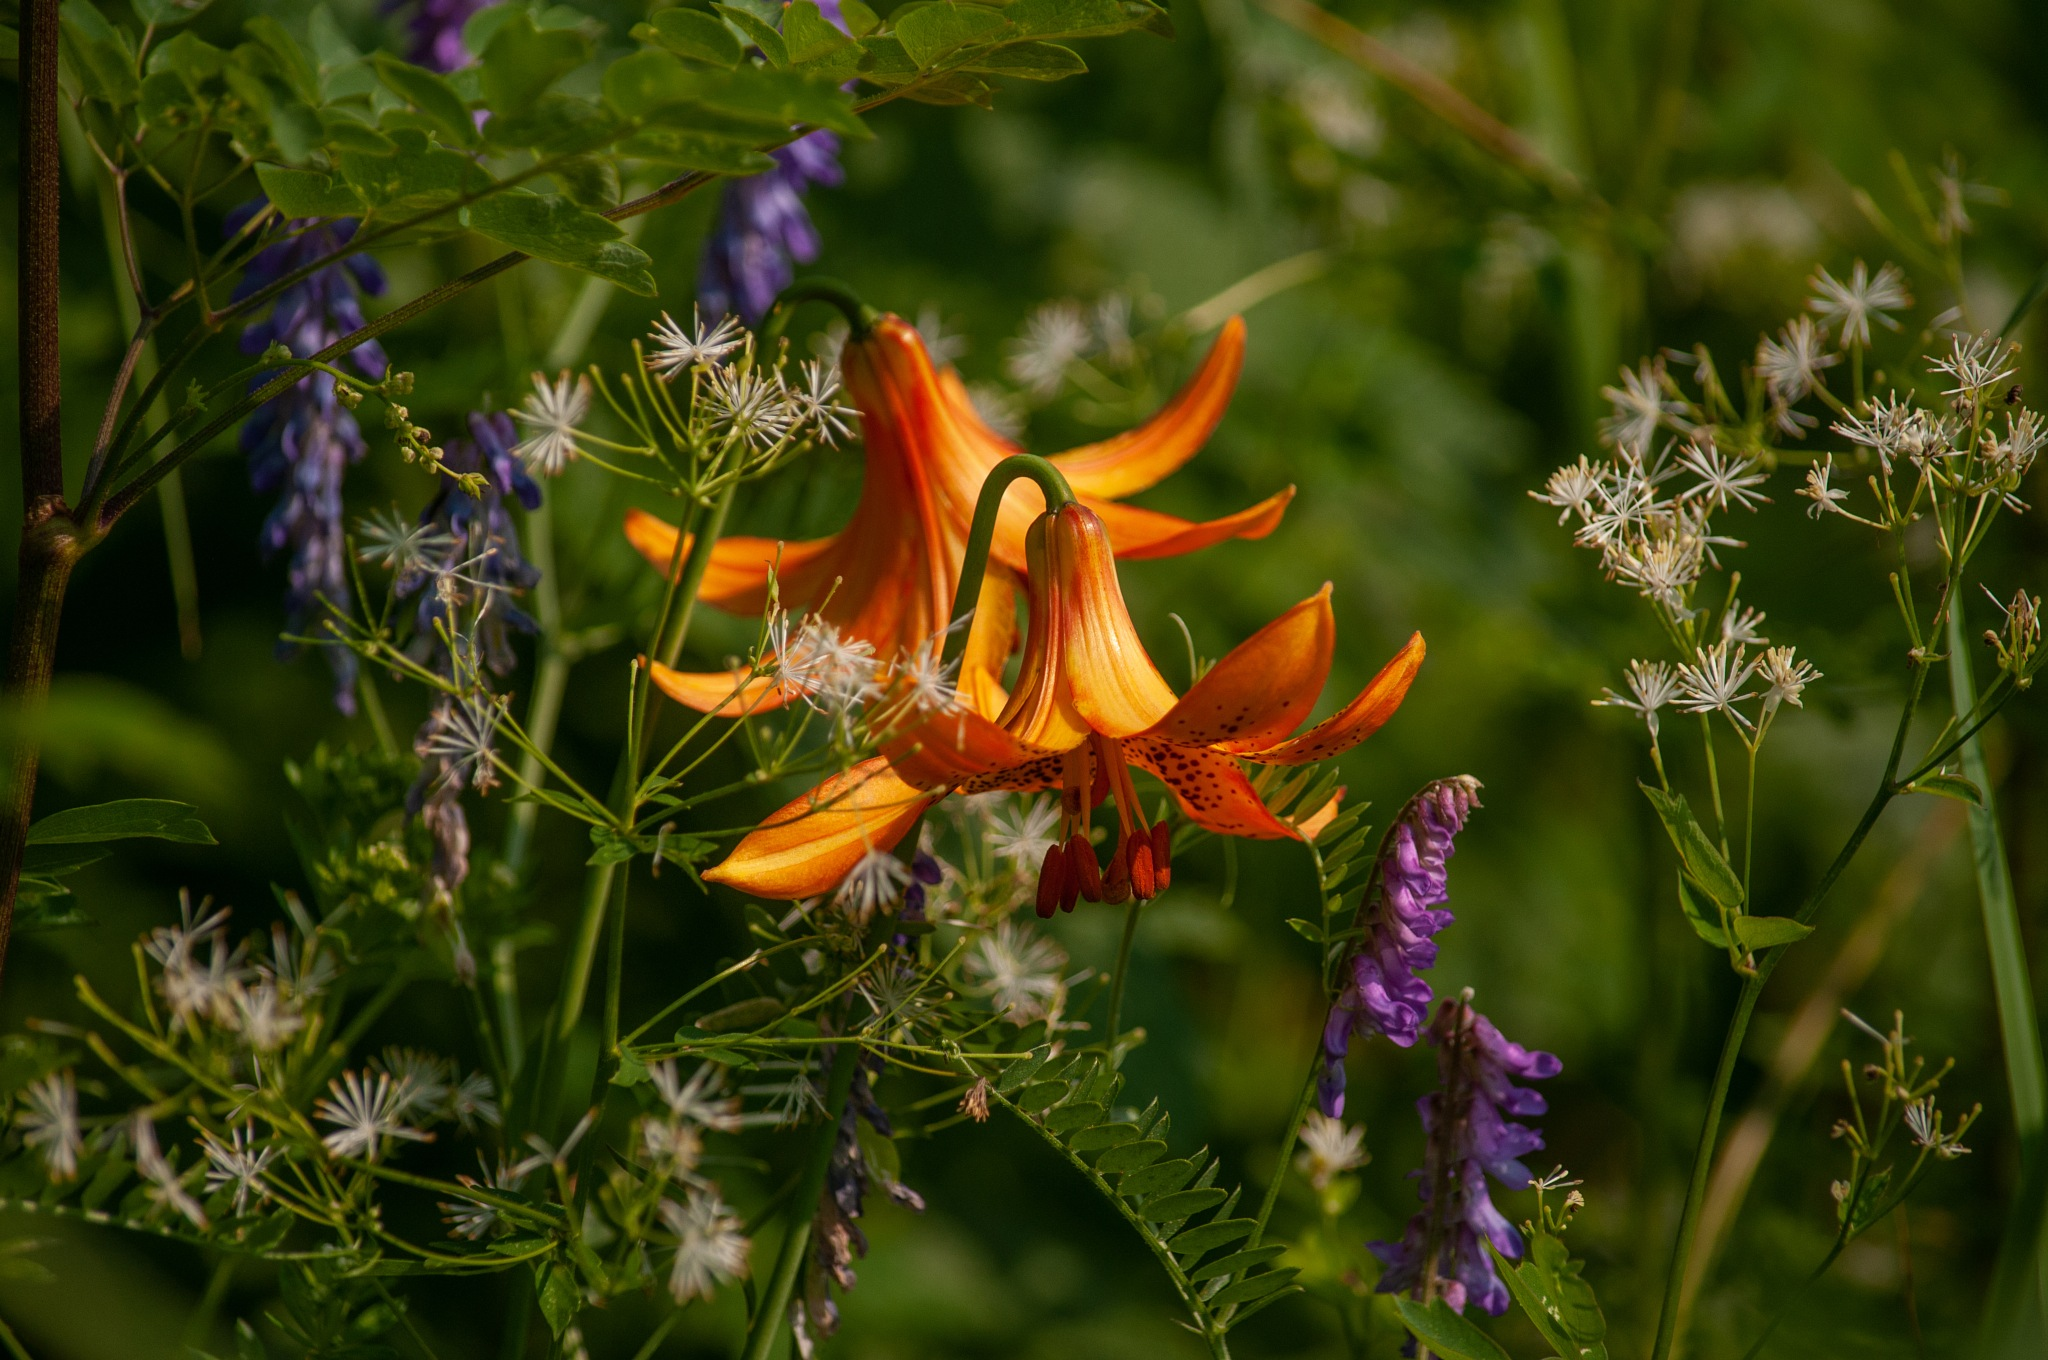 Canada Lily by coleen.ramsay